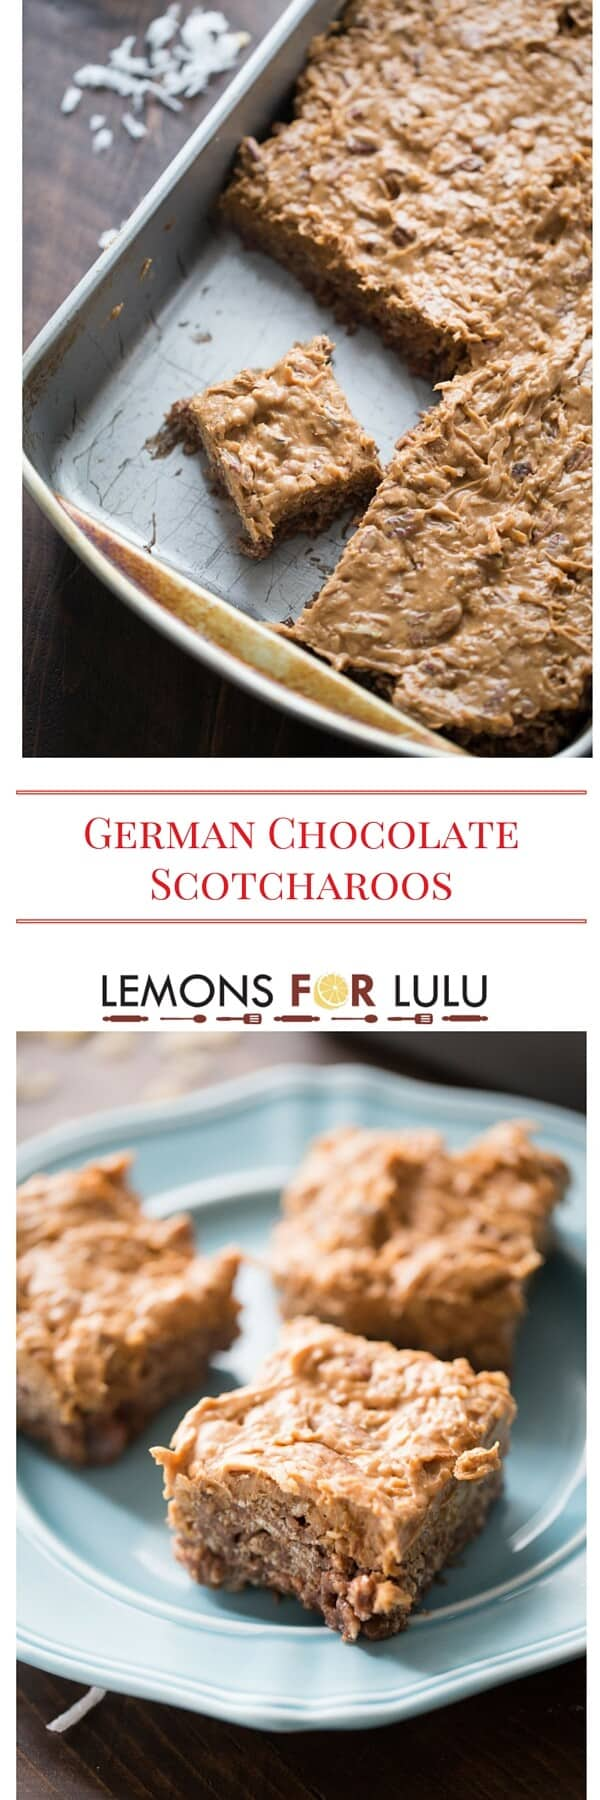 Everyone loves scotcharoos! These German chocolate schotcharoos are irresistible!